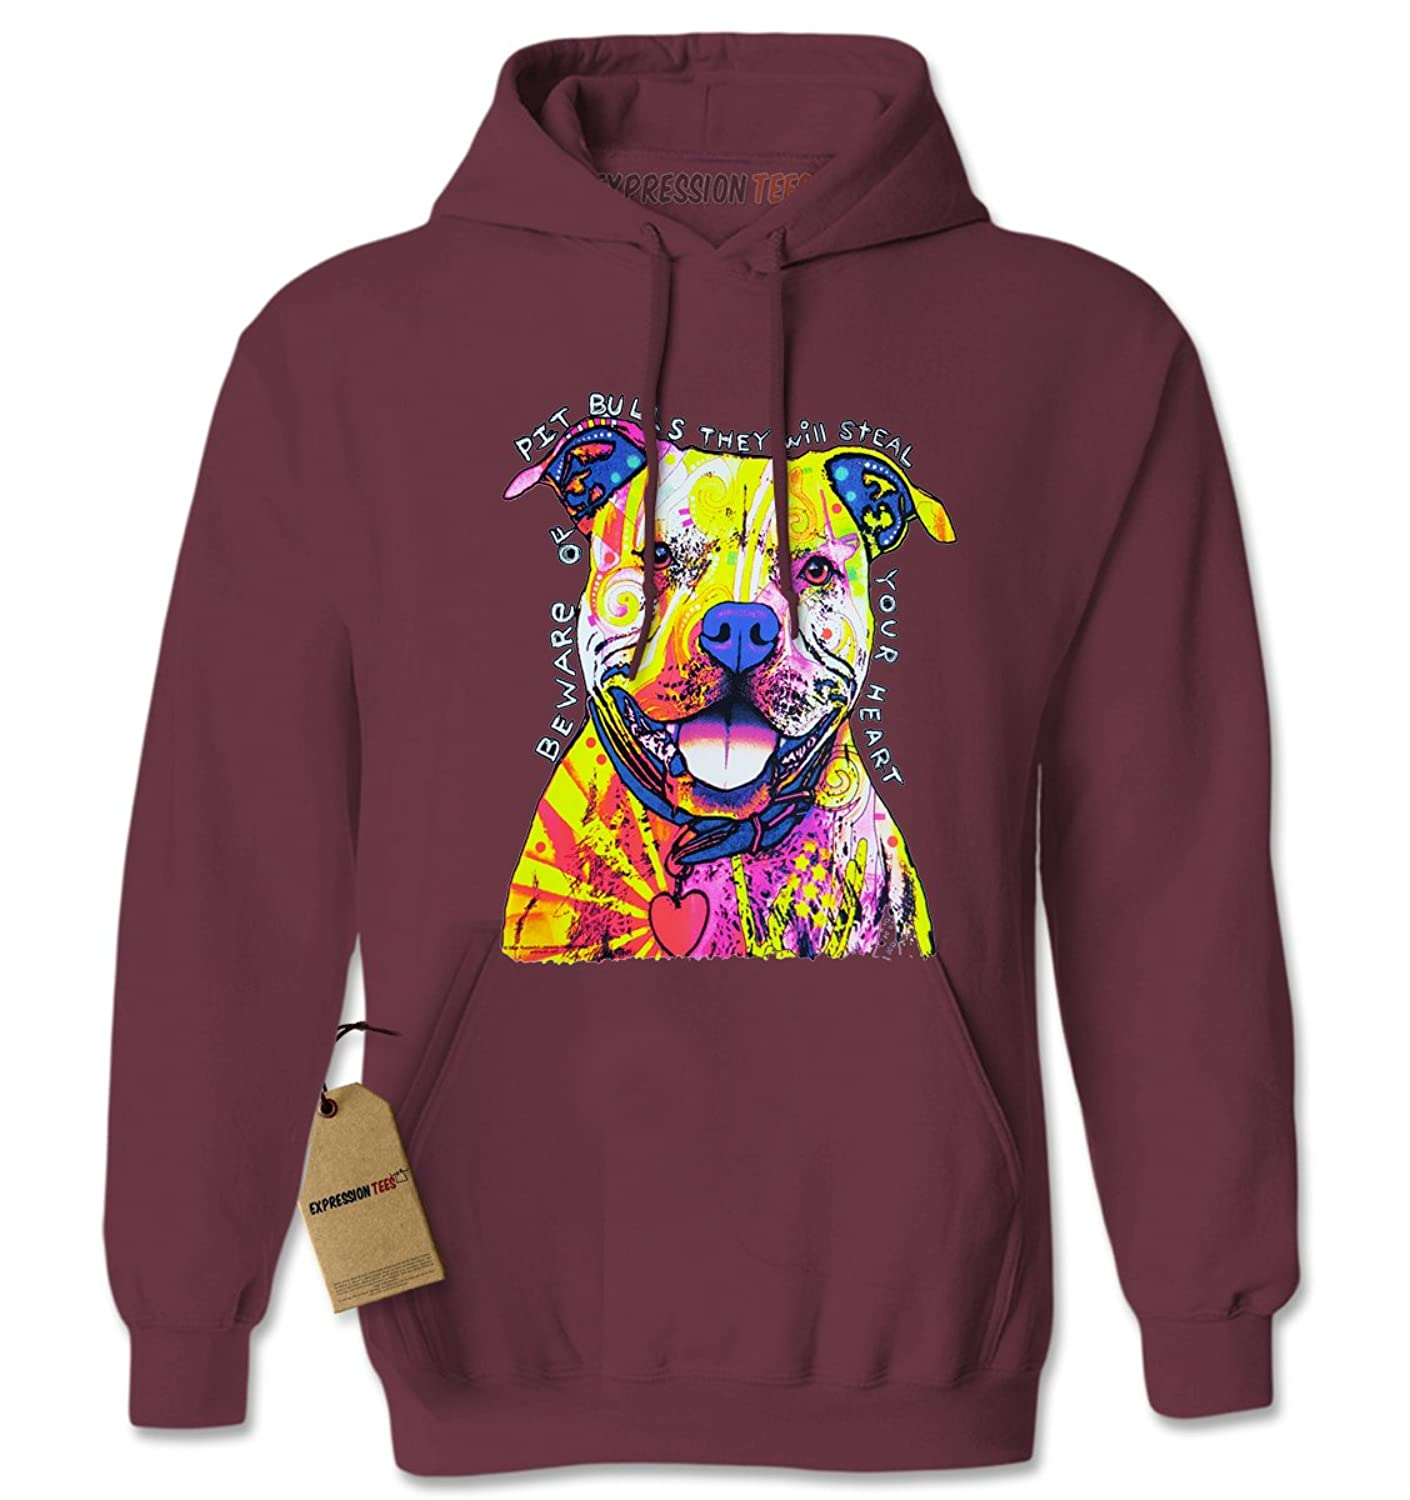 c02e242fea444 Show your love for your American Pitbull Terrier Dog Everyone Loves A Pit  Bull Puppy Printed and designed in the U.S.A. using top quality garments  for ...